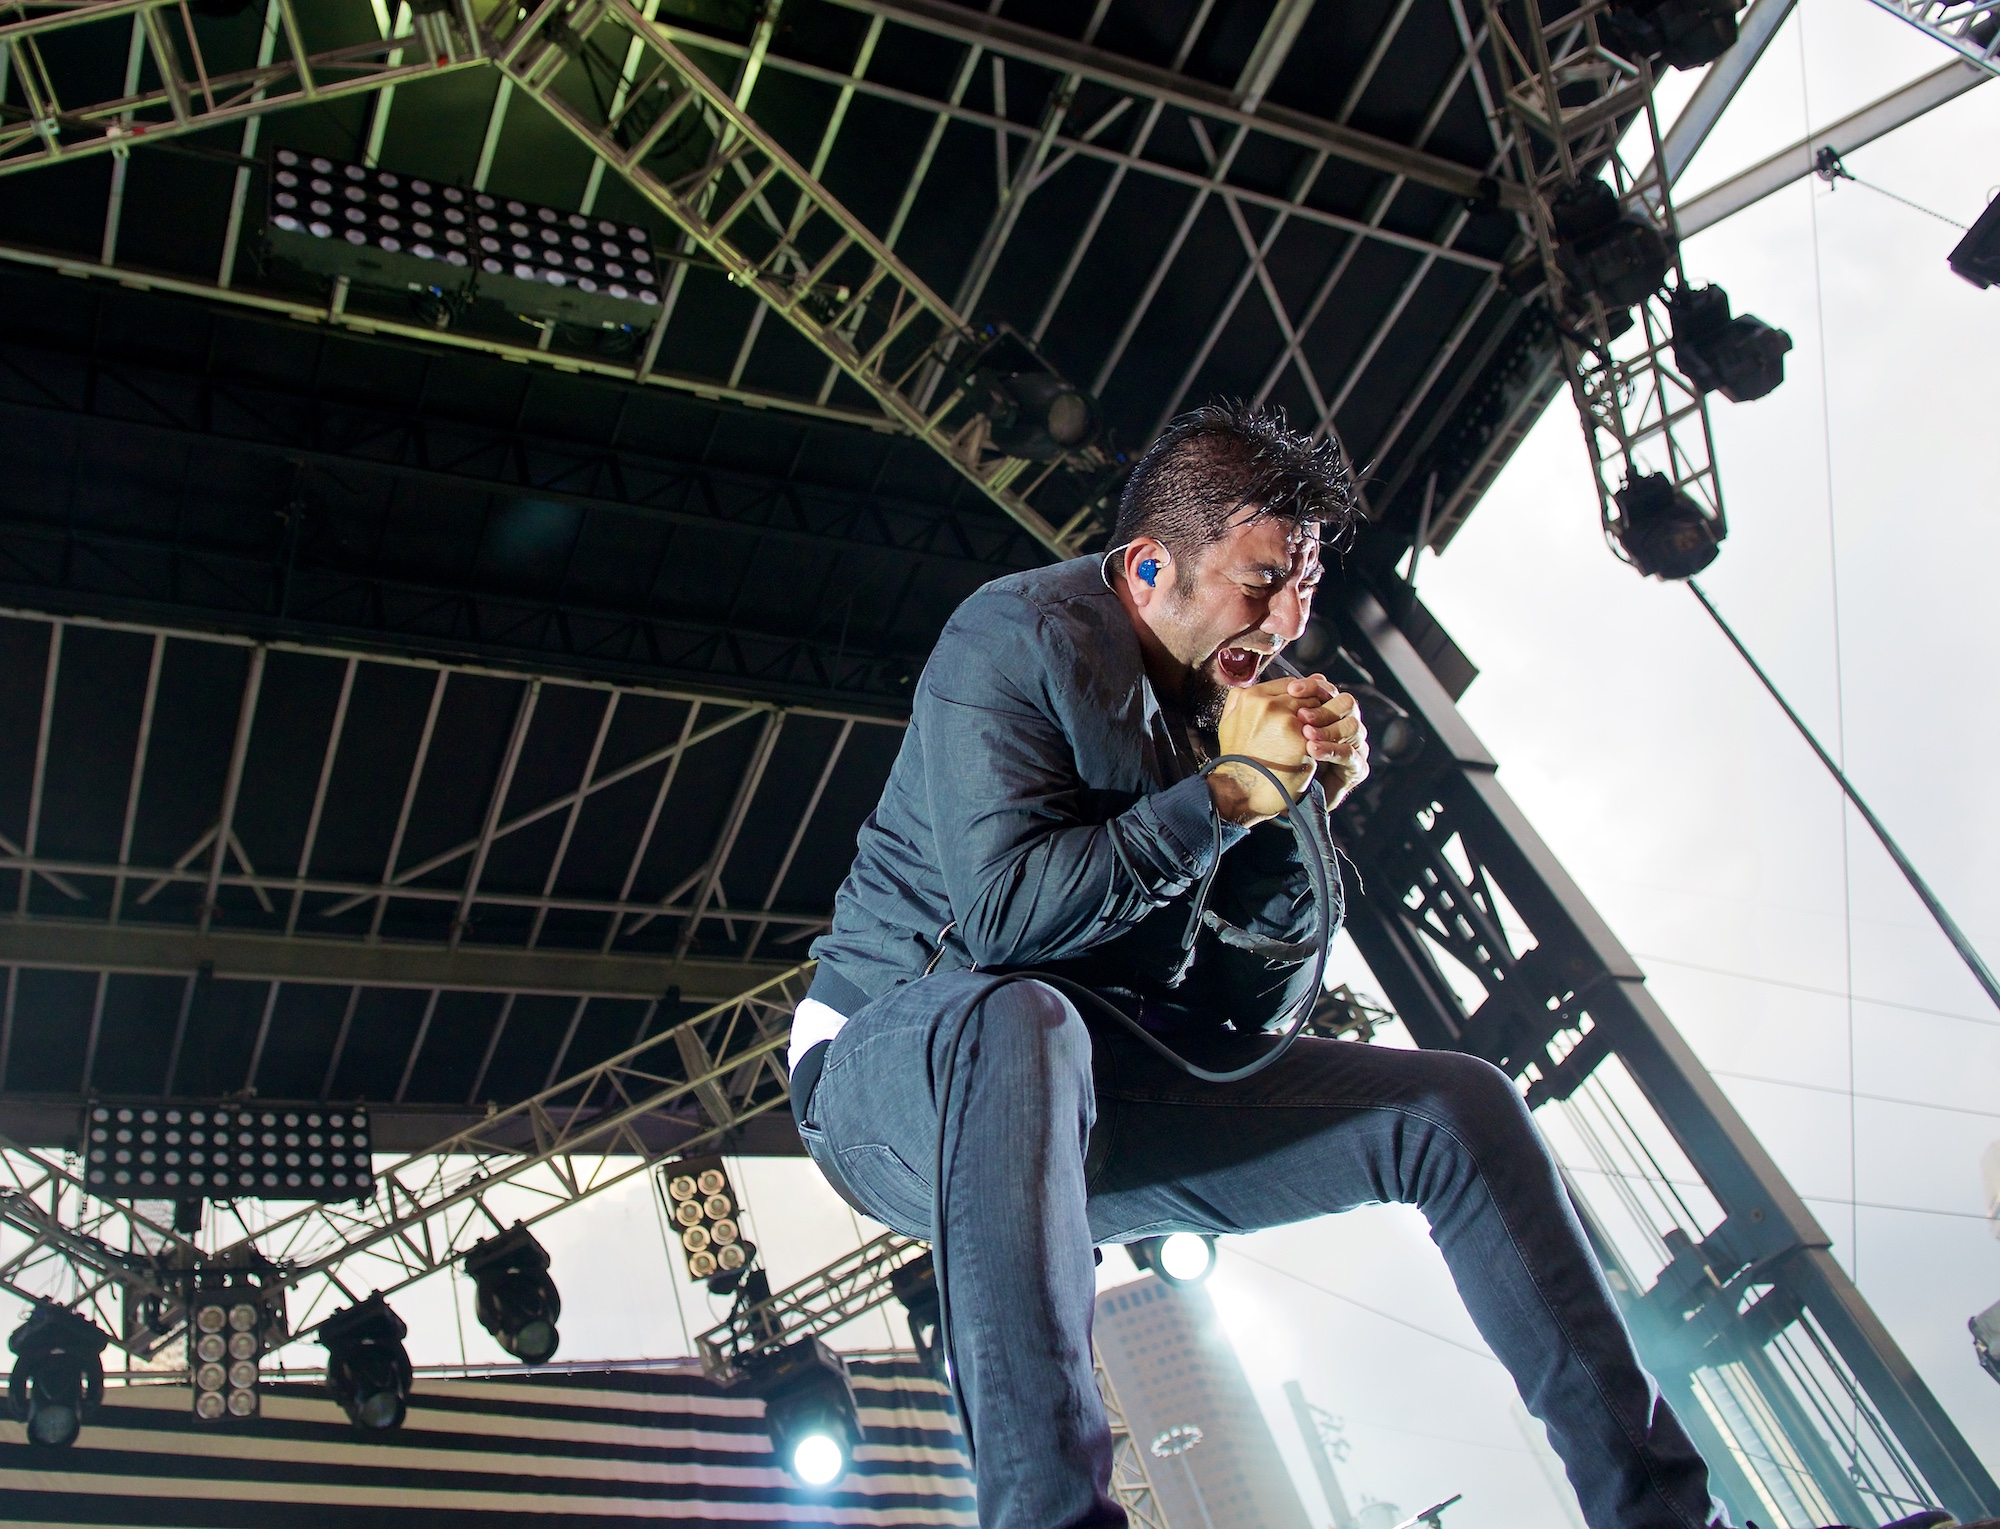 Chino Moreno performs with Deftones during Free Press Music Festival, Houston, TX. May 31, 2014